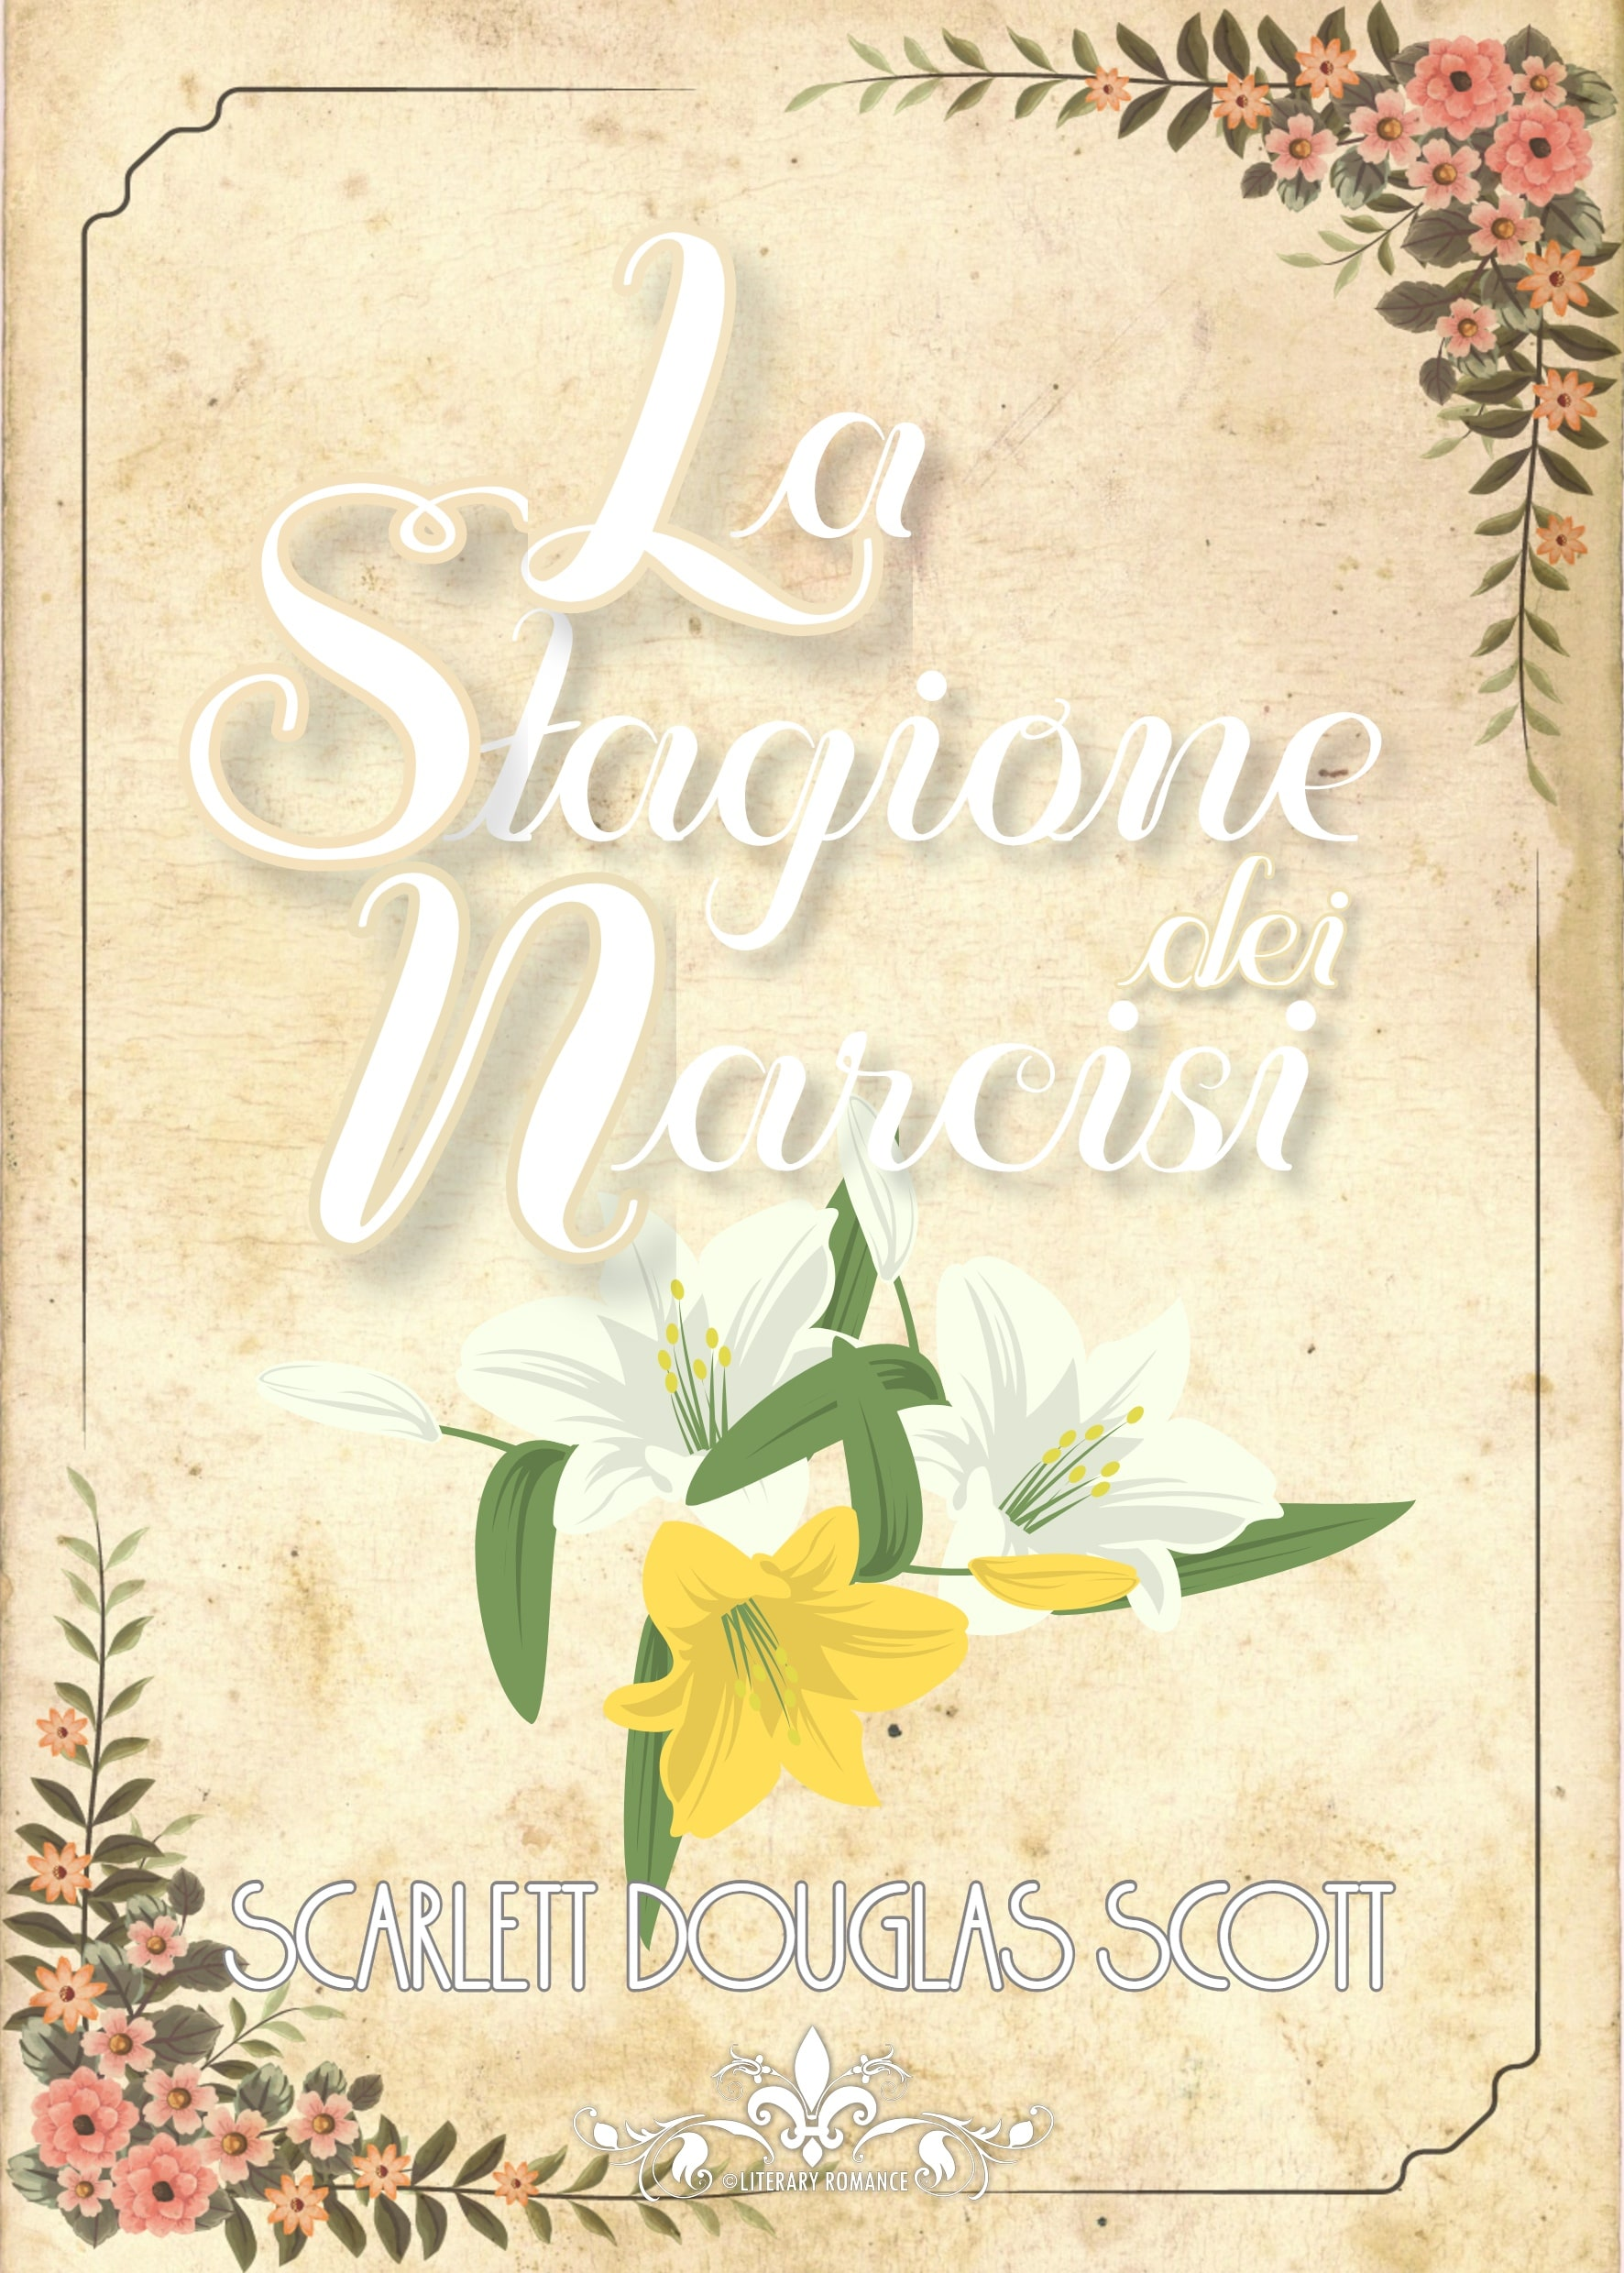 La stagione dei narcisi Book Cover